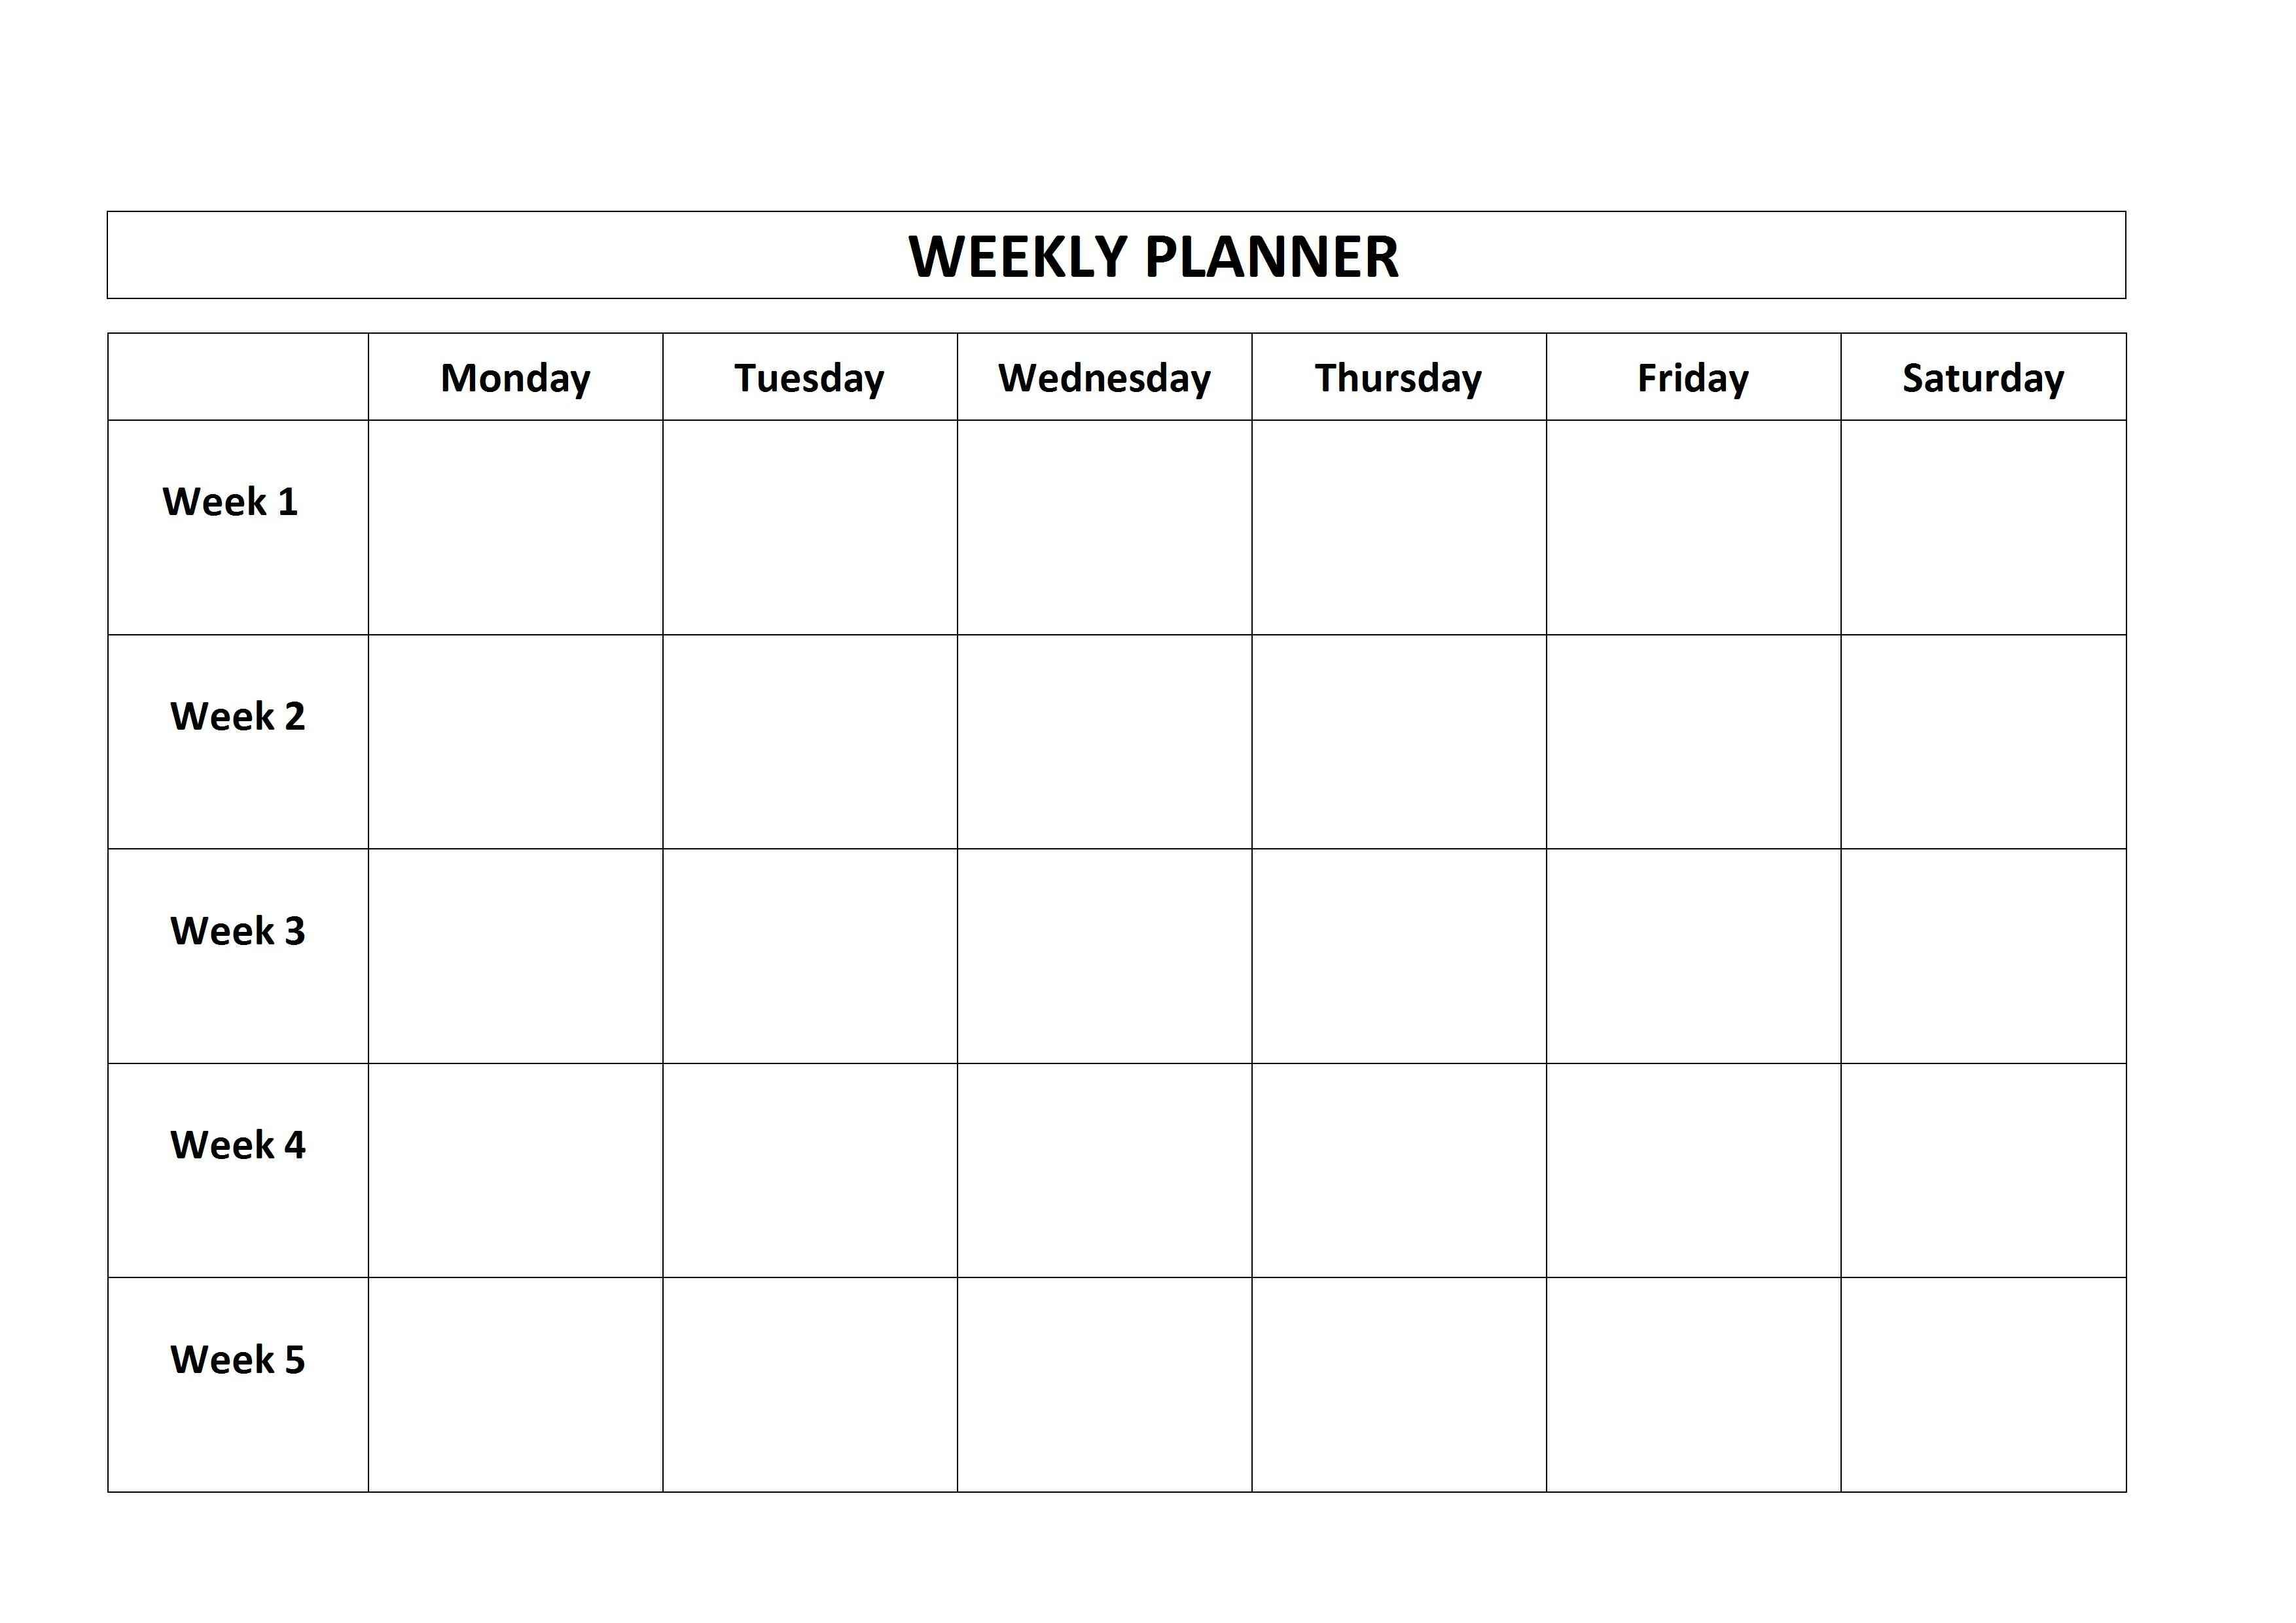 Free Printable Weekly Planner Monday Friday School Calendar On The